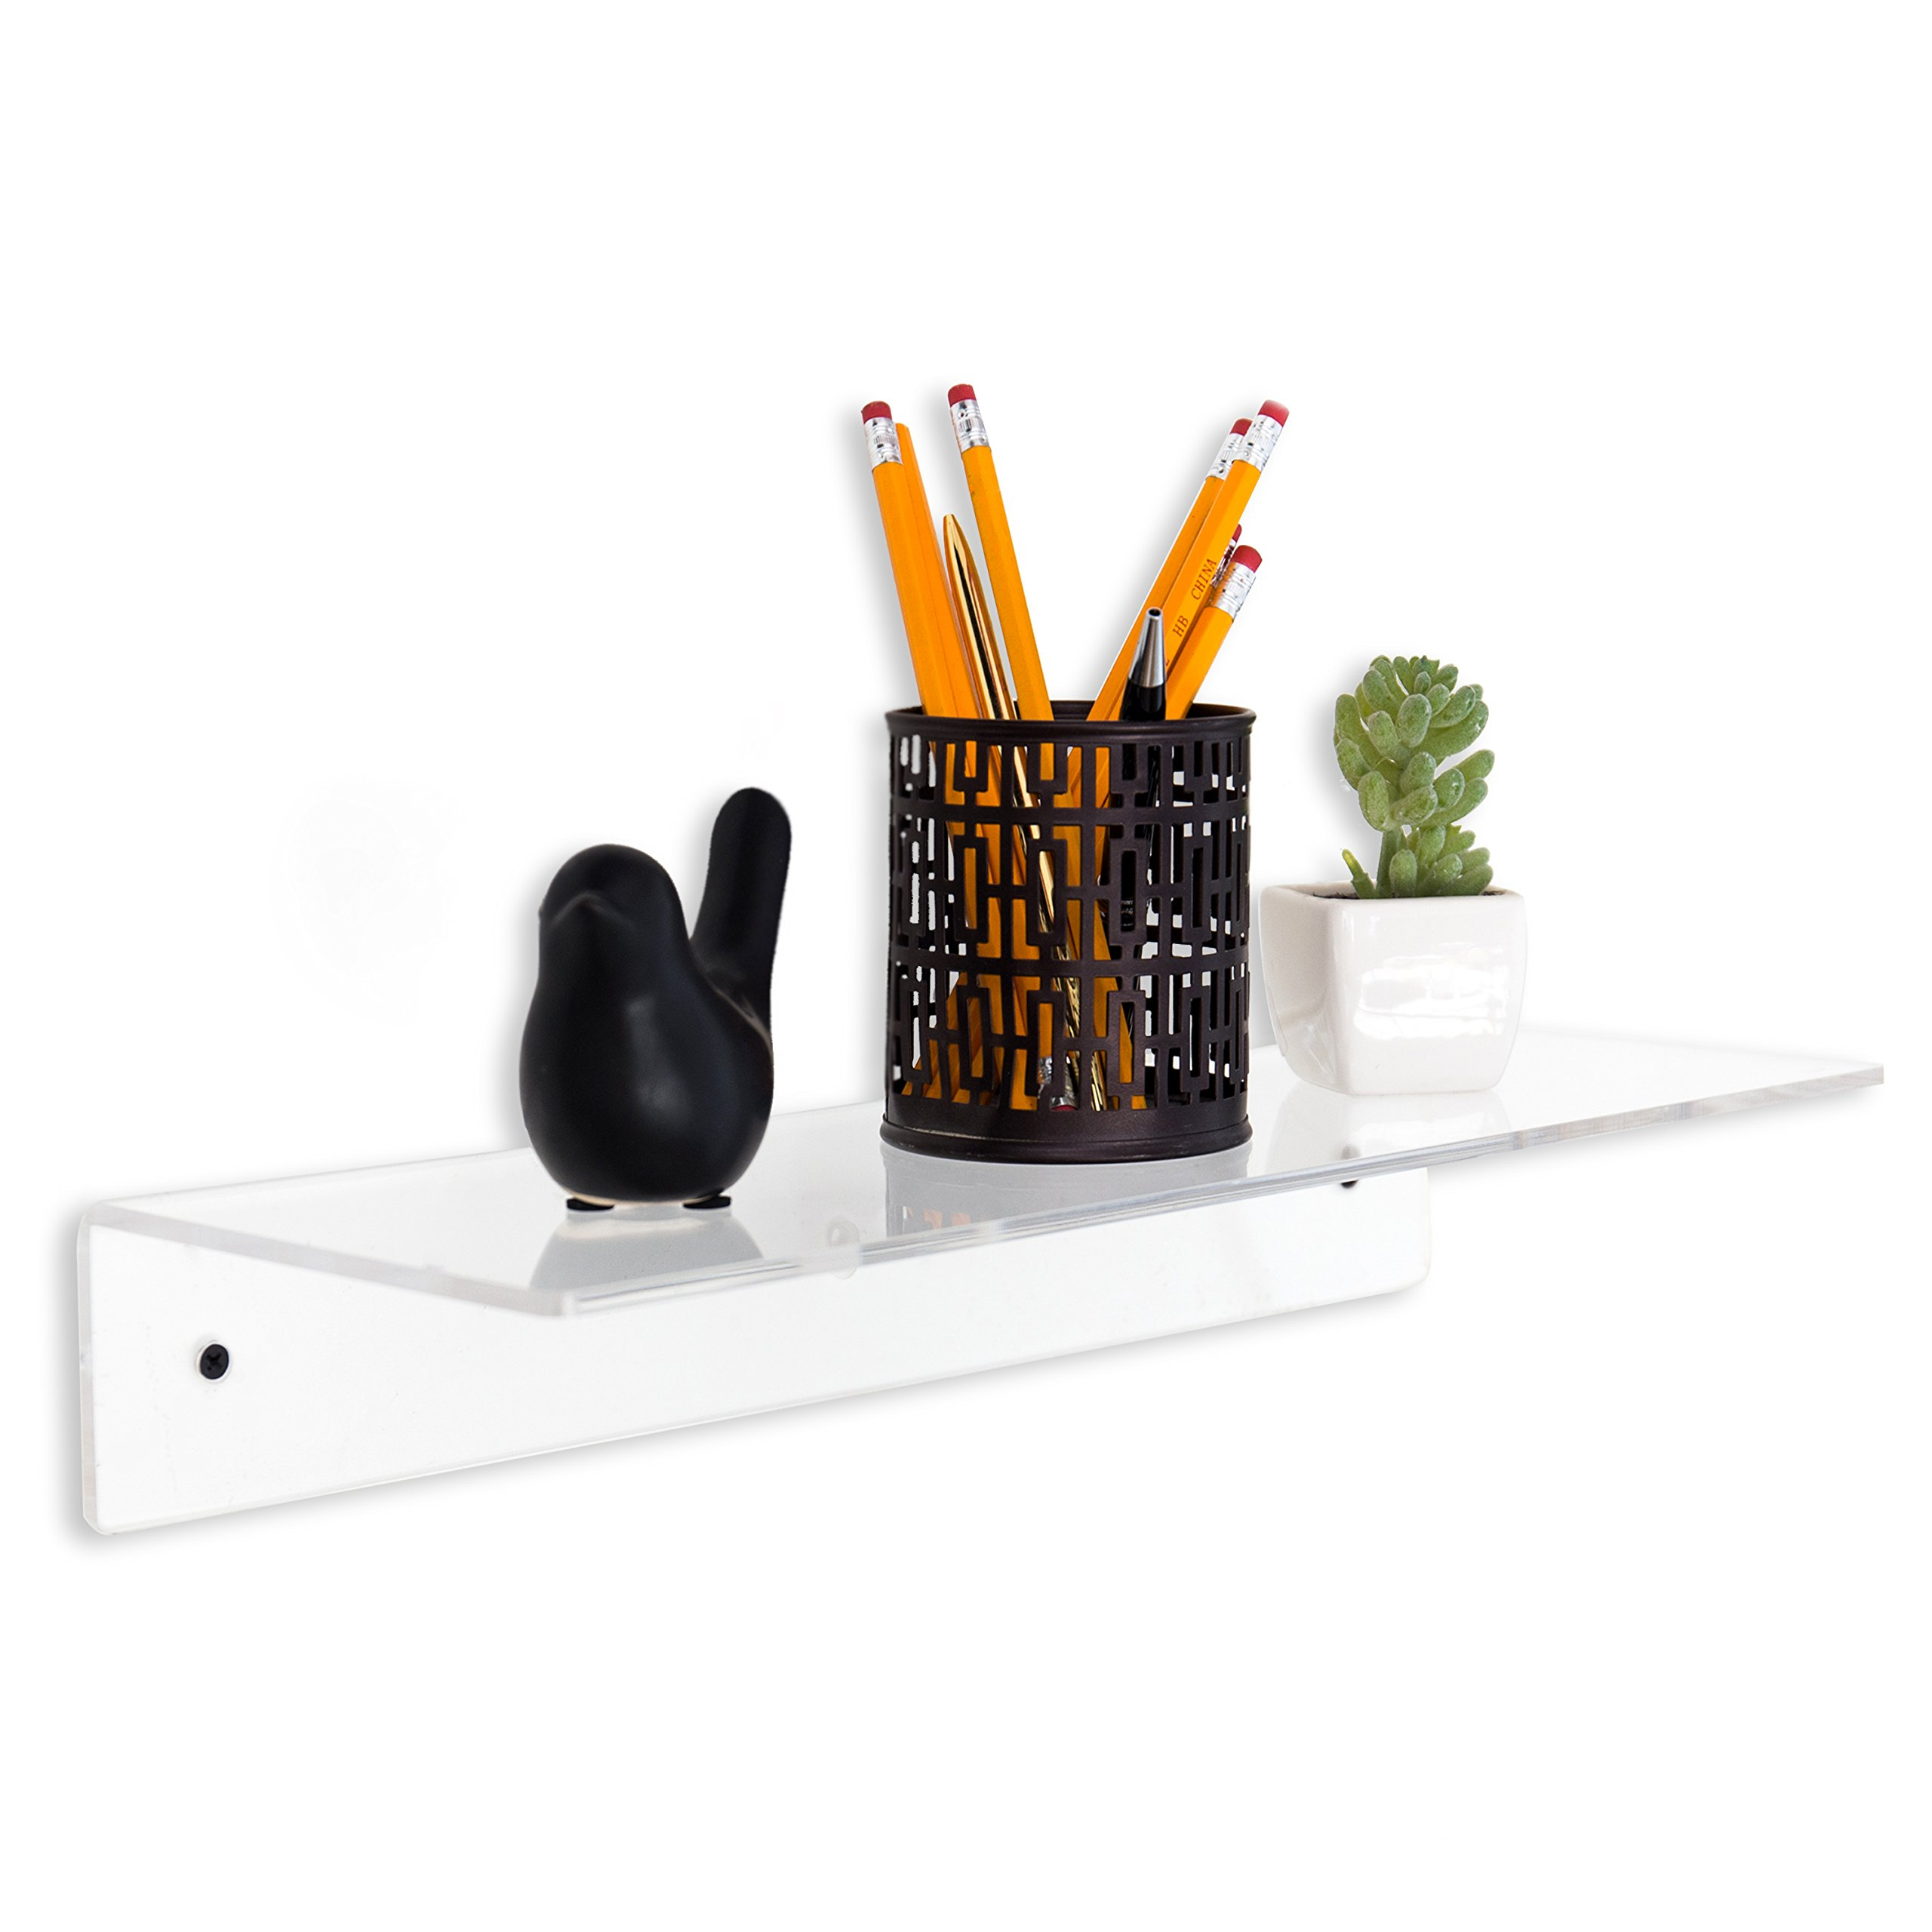 MyGift 17 Inch Contemporary Clear Acrylic Floating Shelf/Wall Mounted Display Organizer